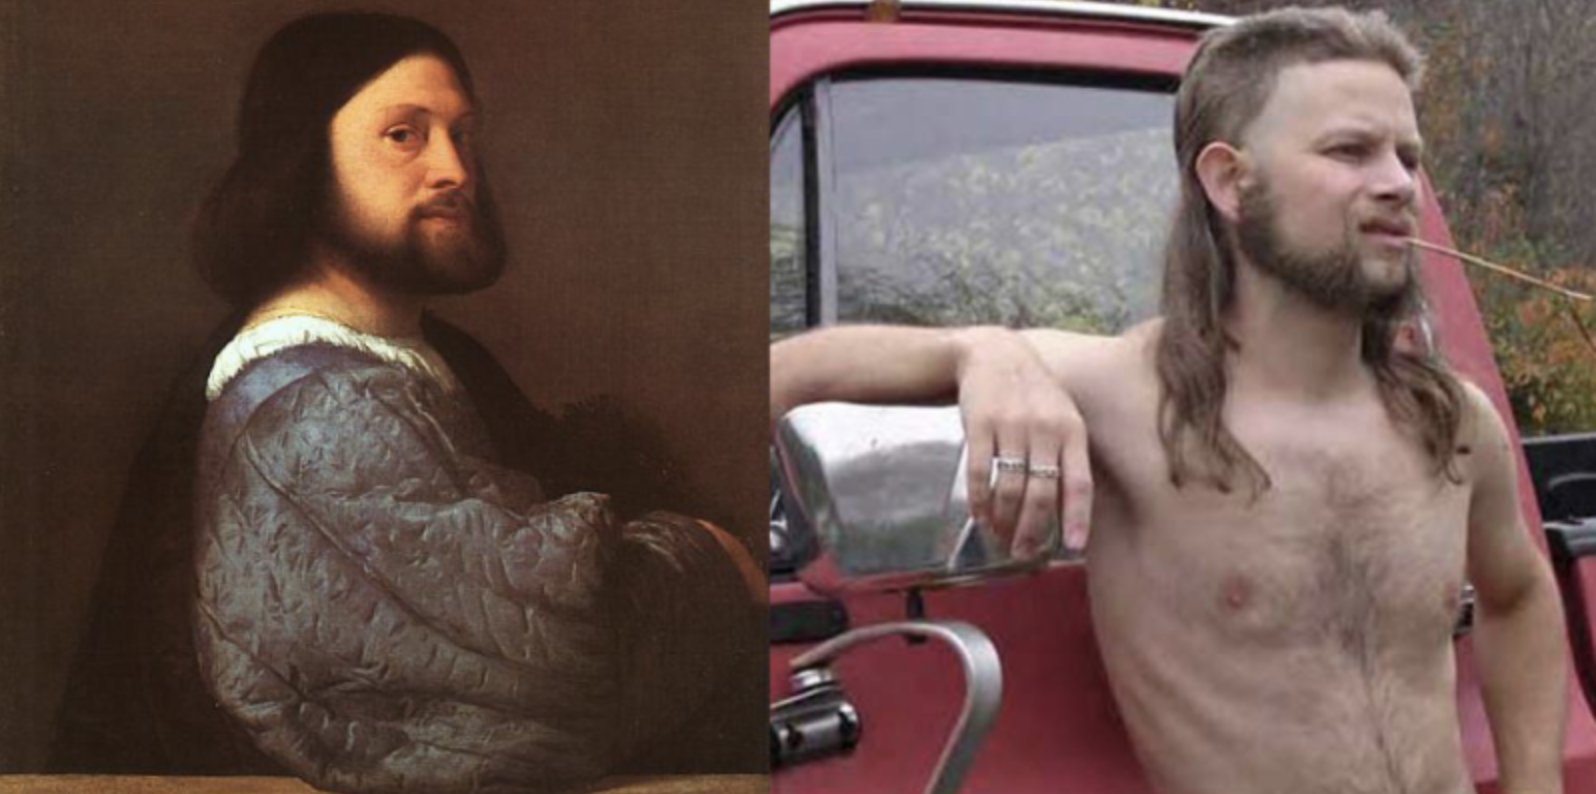 Pictured (left): an educated European in the 1500's. He knew less about the world than a modern shirtless guy with a piece of hay sticking out of his mouth.